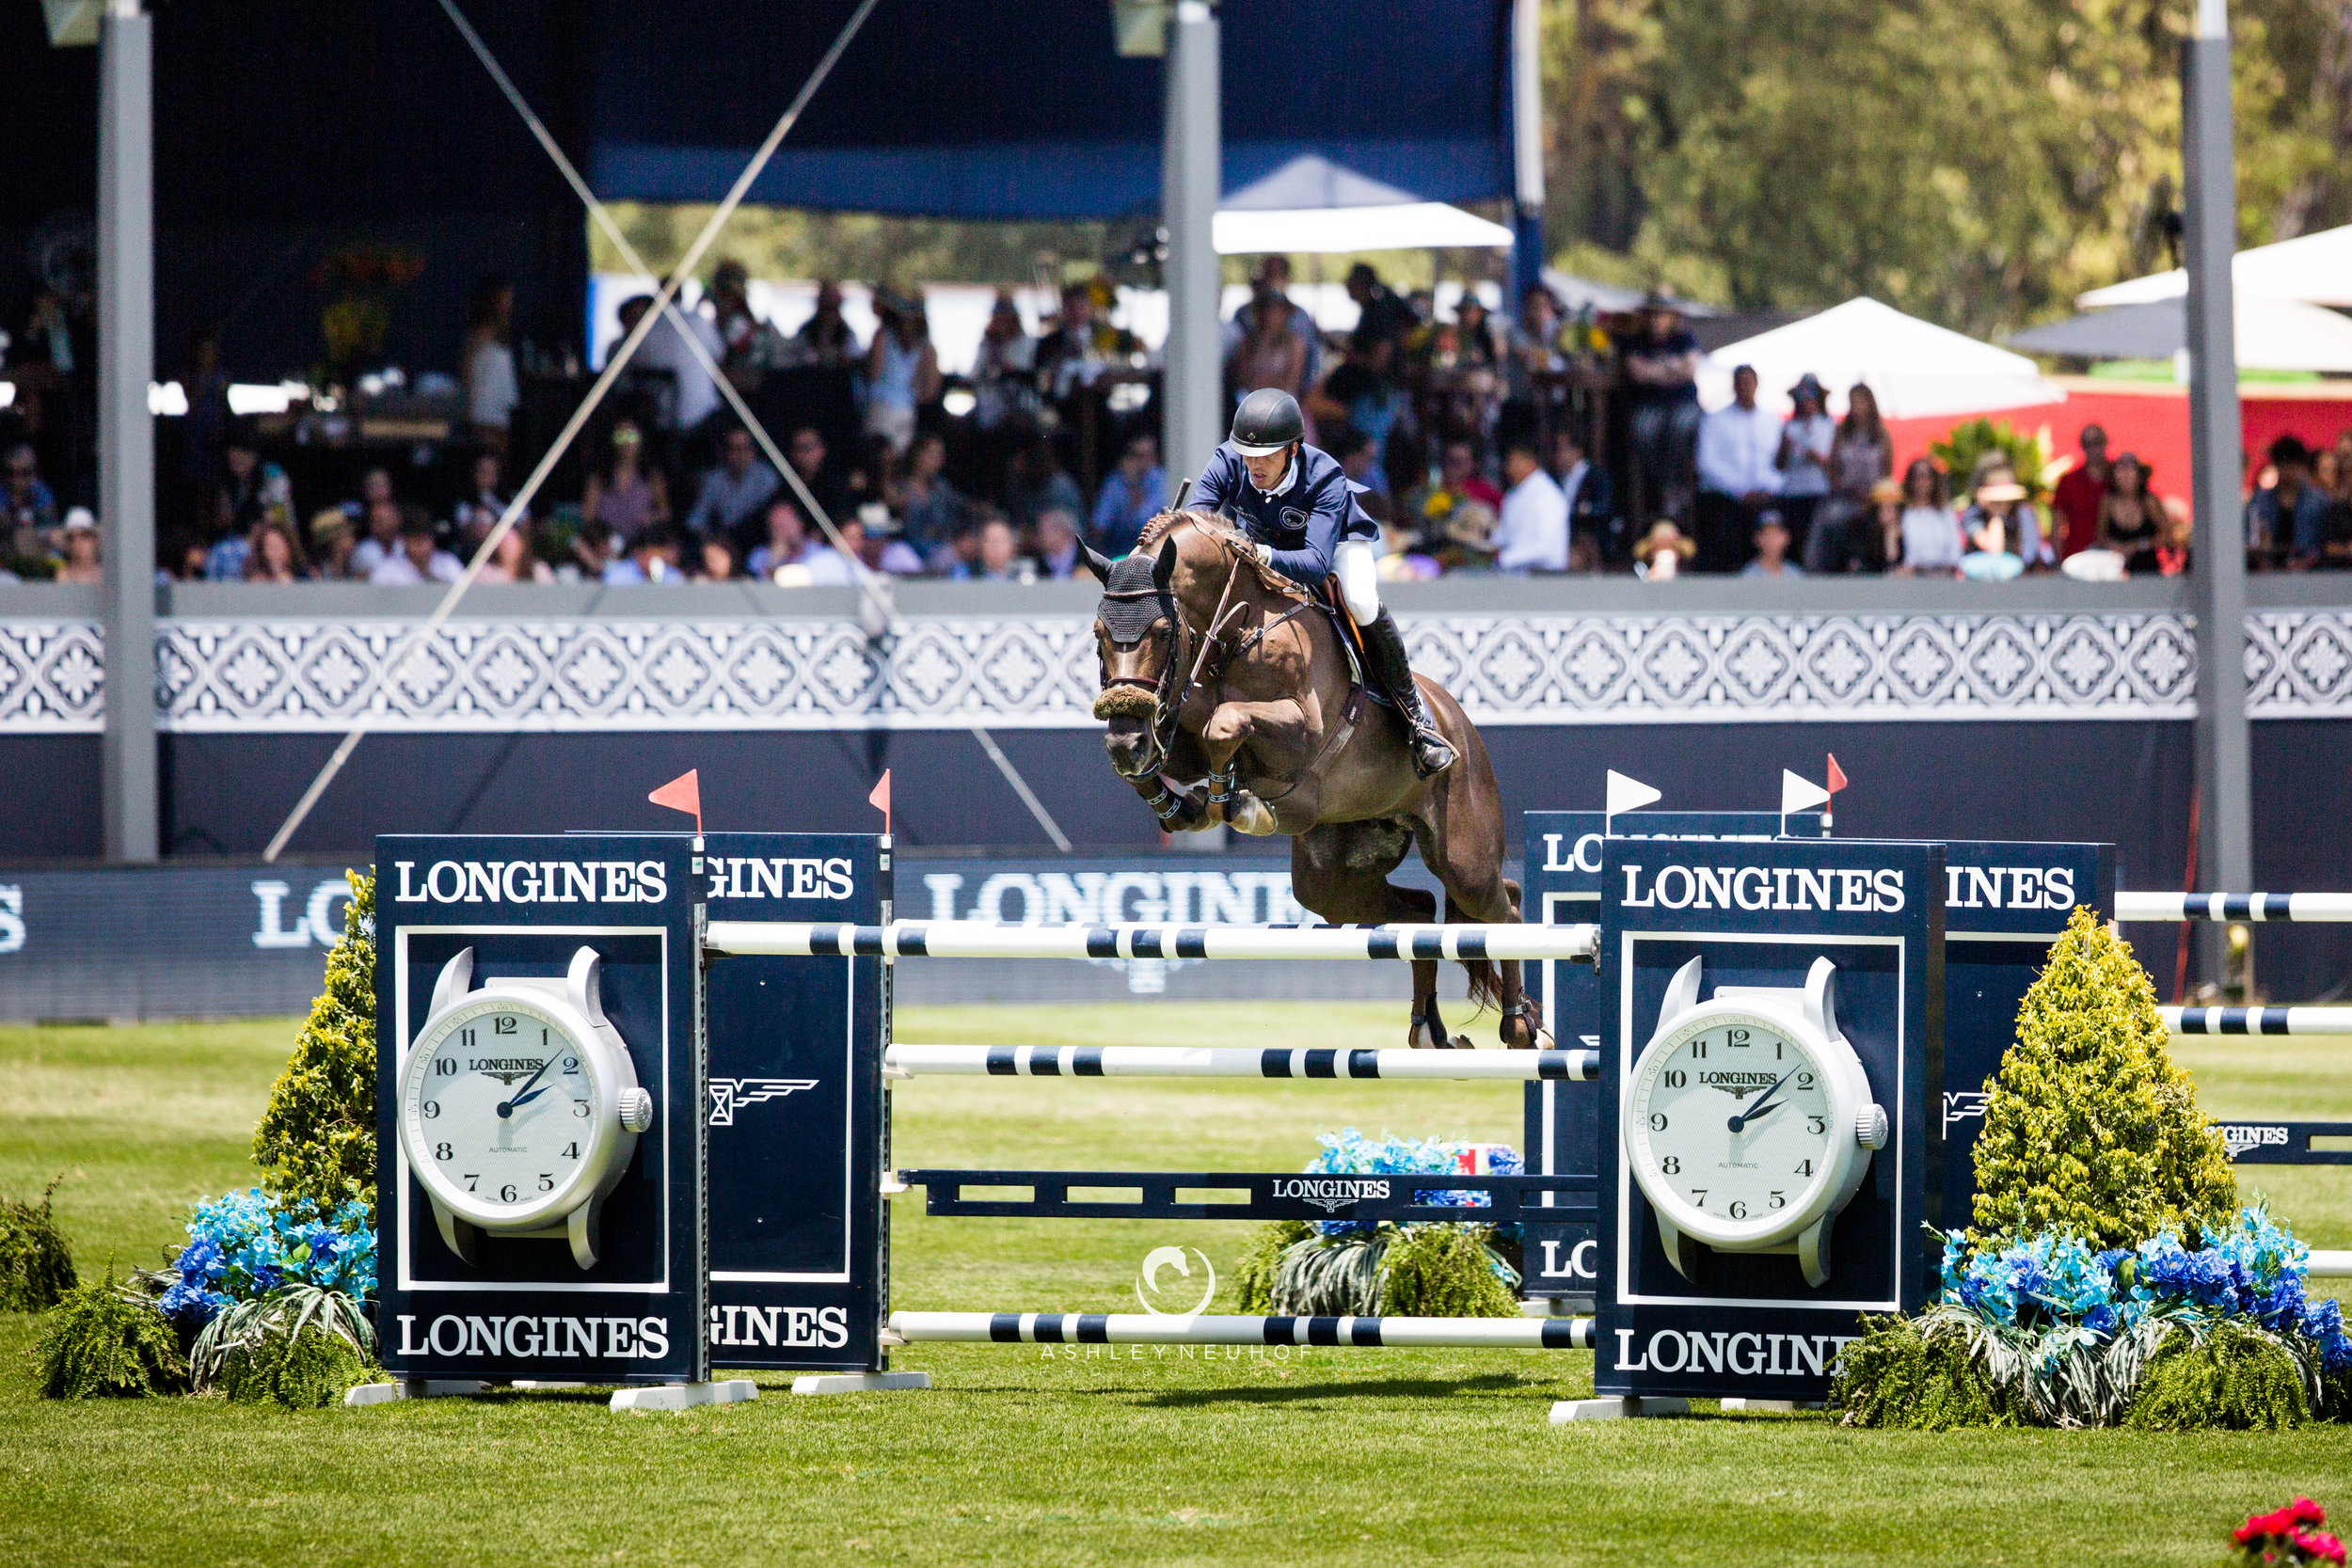 Harrie Smolders and Don VHP Z N.O.P. at Global Champions League of Mexico City 2019. Photo by Ashley Neuhof Photography.